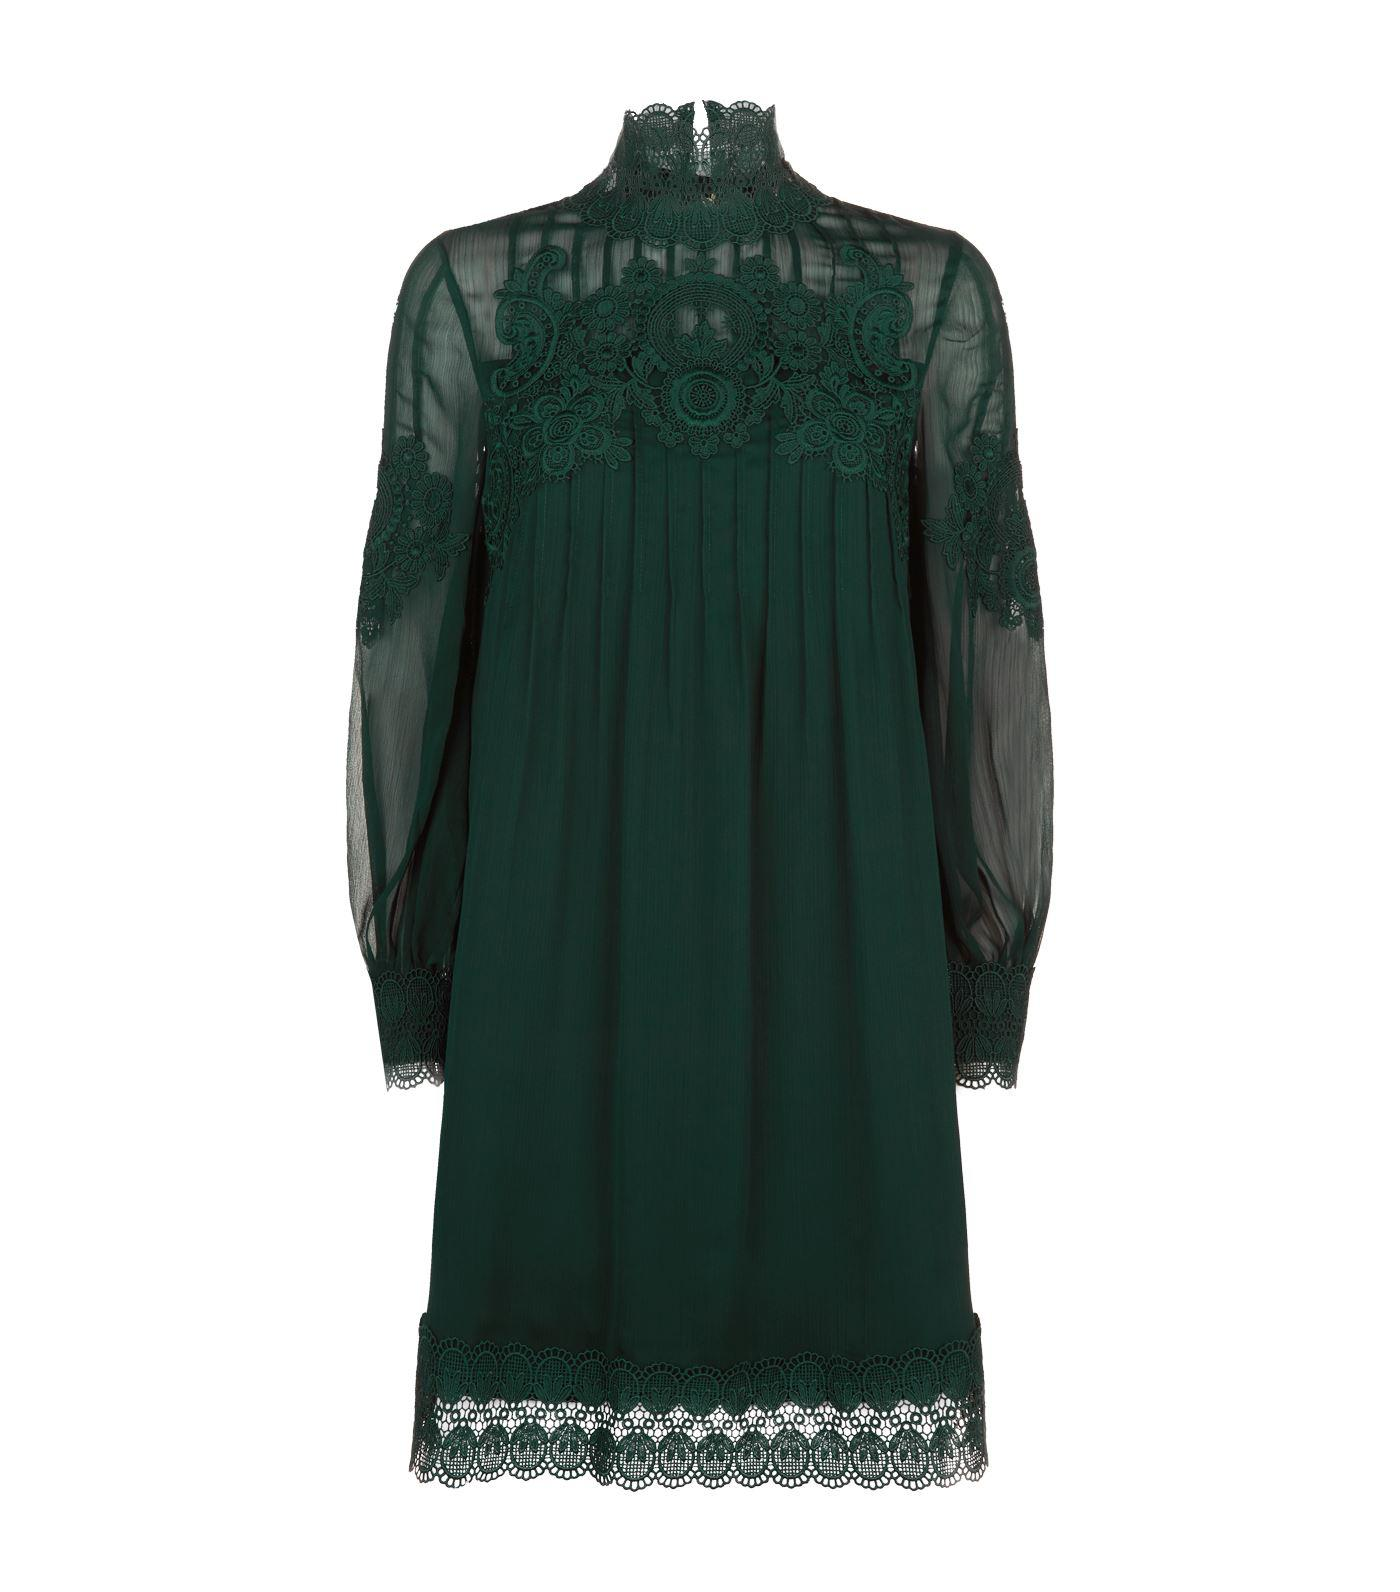 729f7fe598ea Ted Baker Anneah Lace High Neck Tunic in Green - Lyst